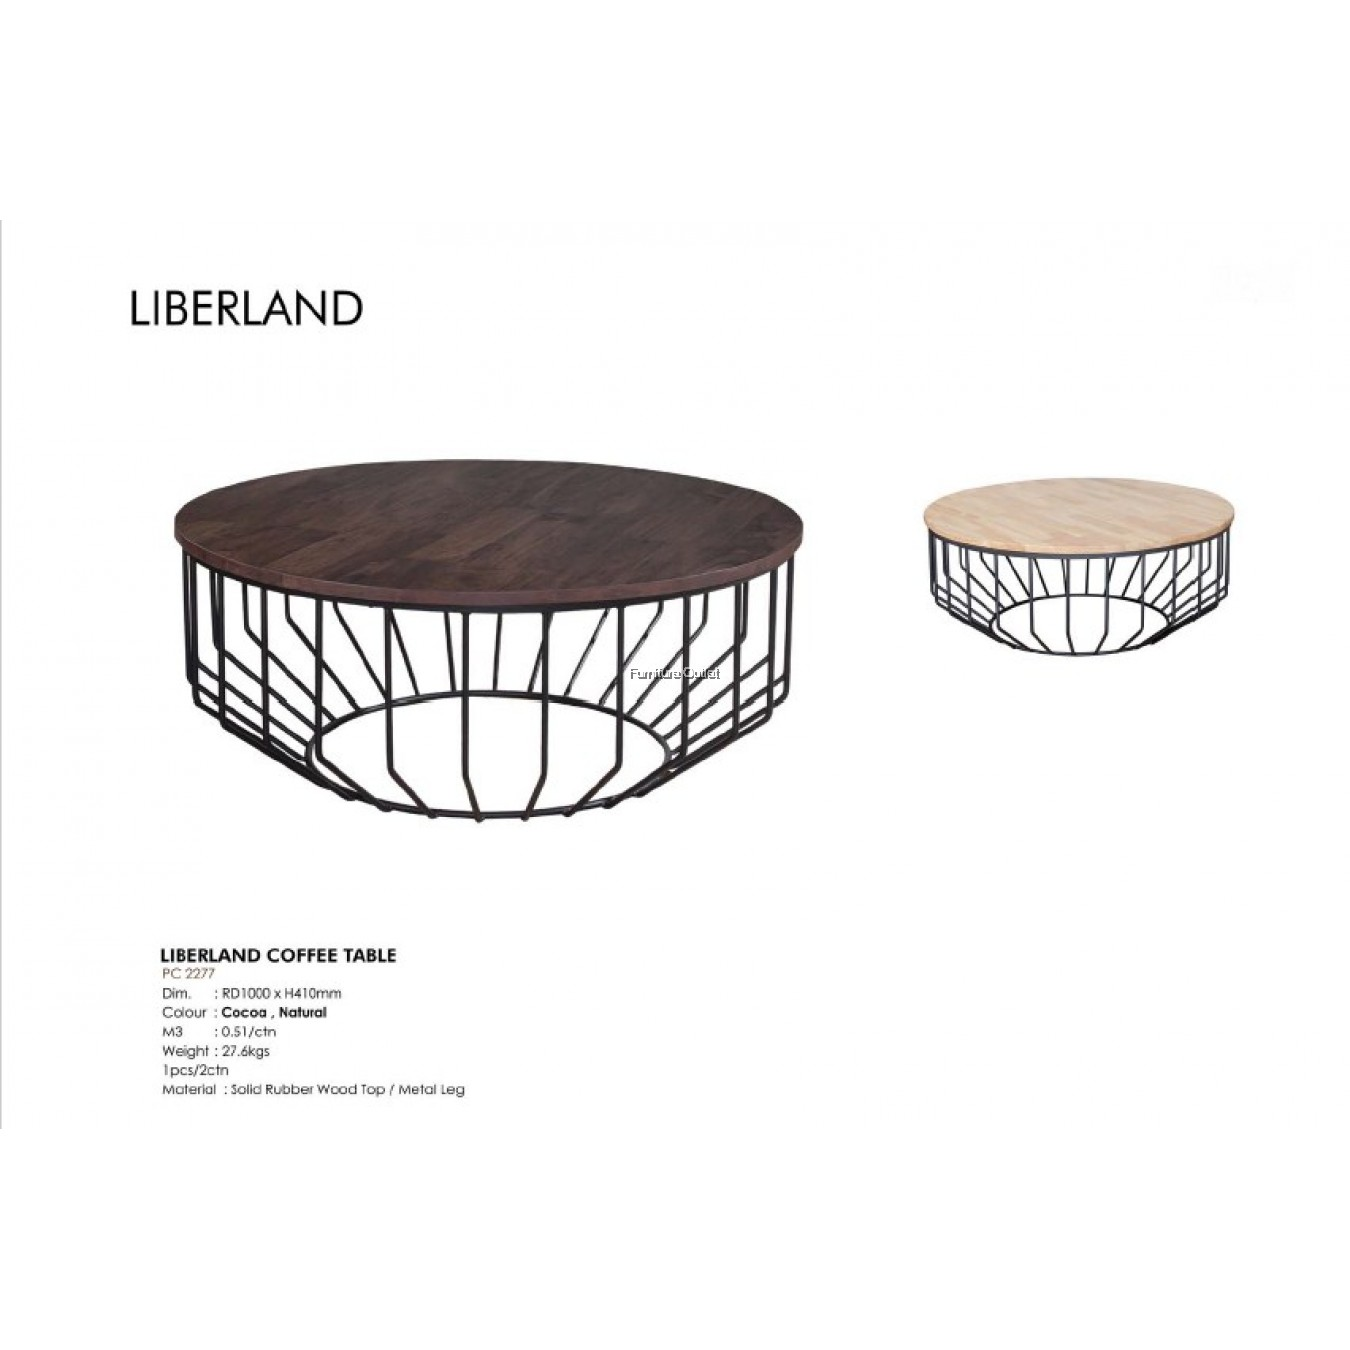 LIBERLAND COFFEE TABLE - COCOA / NATURAL